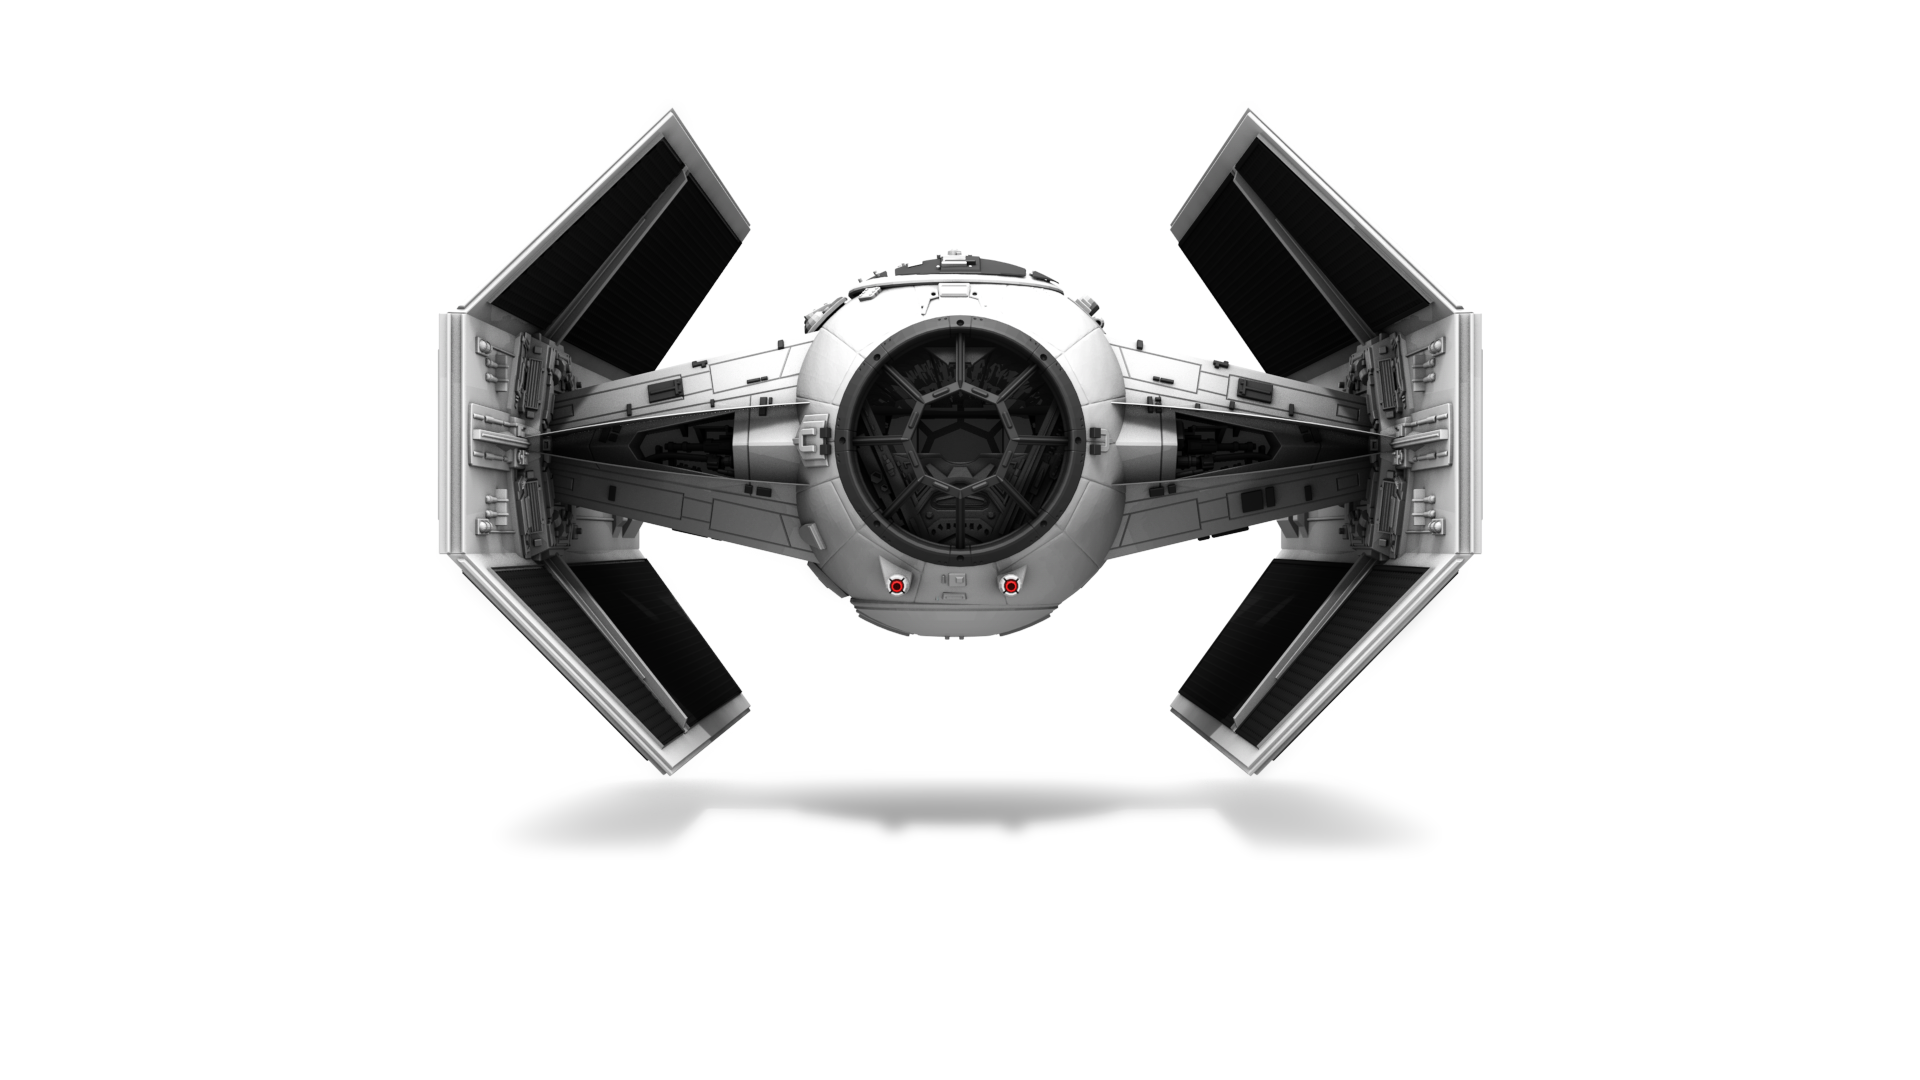 tie advanced x1 wallpaper by nihilusdesigns on deviantart